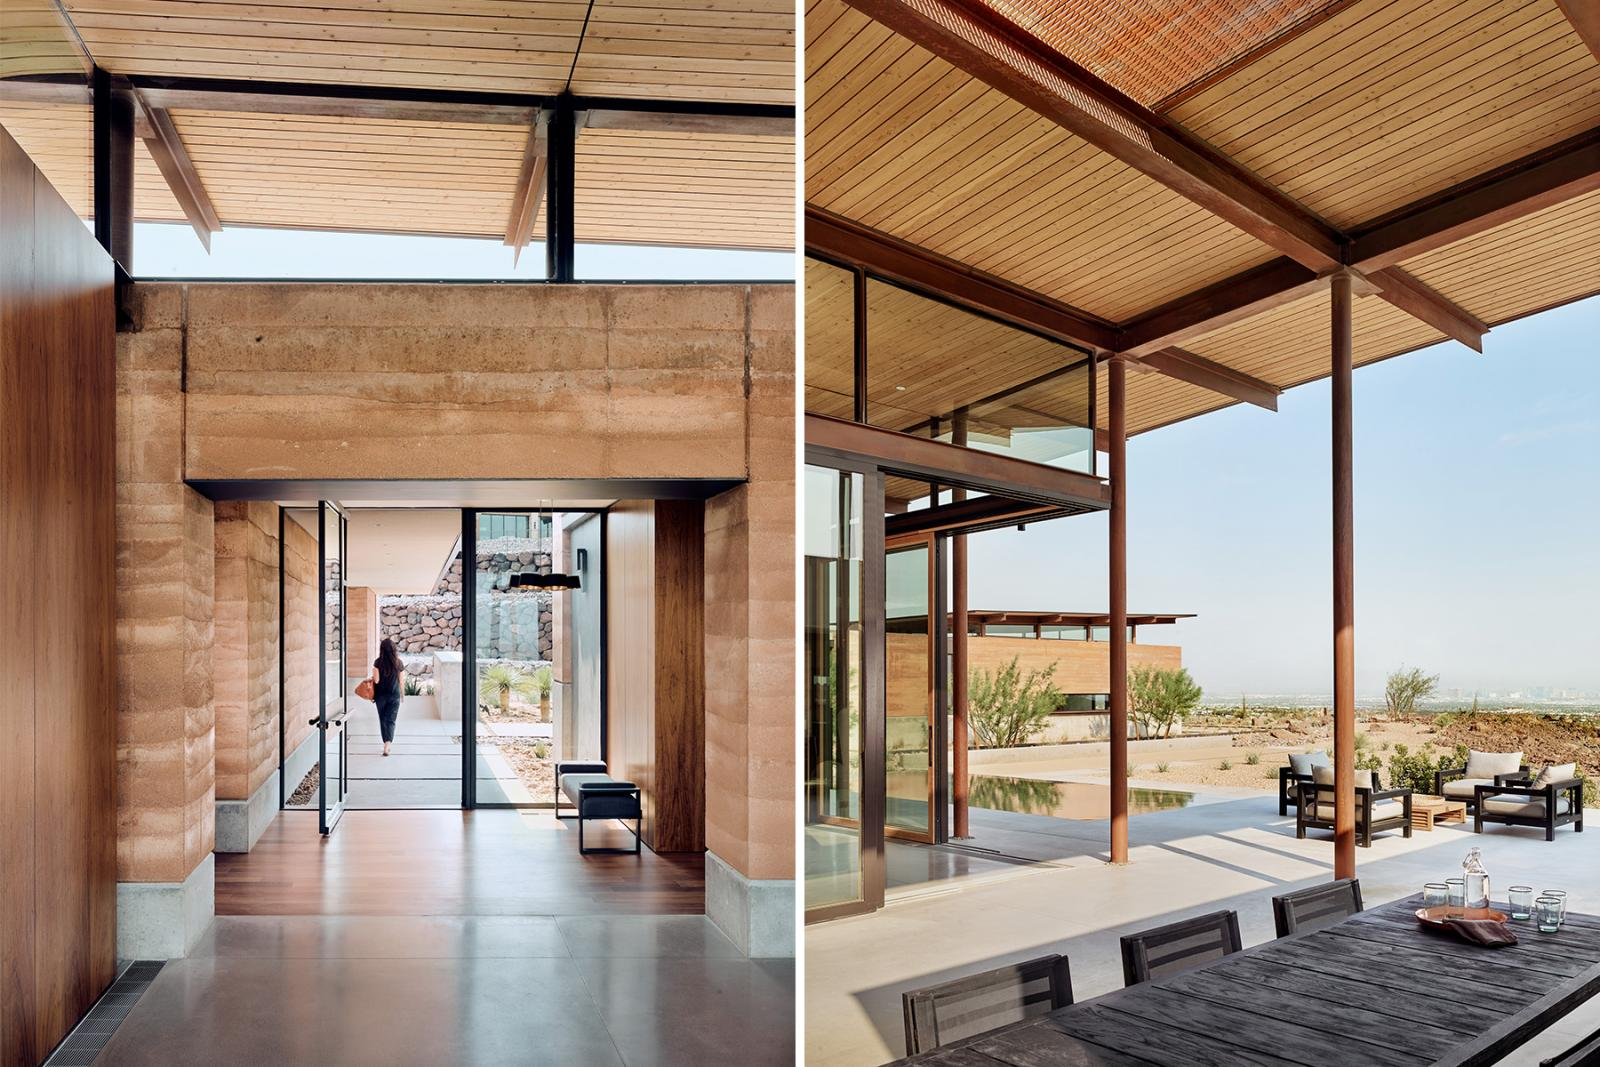 The home's textures, colors and materials blend seamlessly with the surrounding desert.